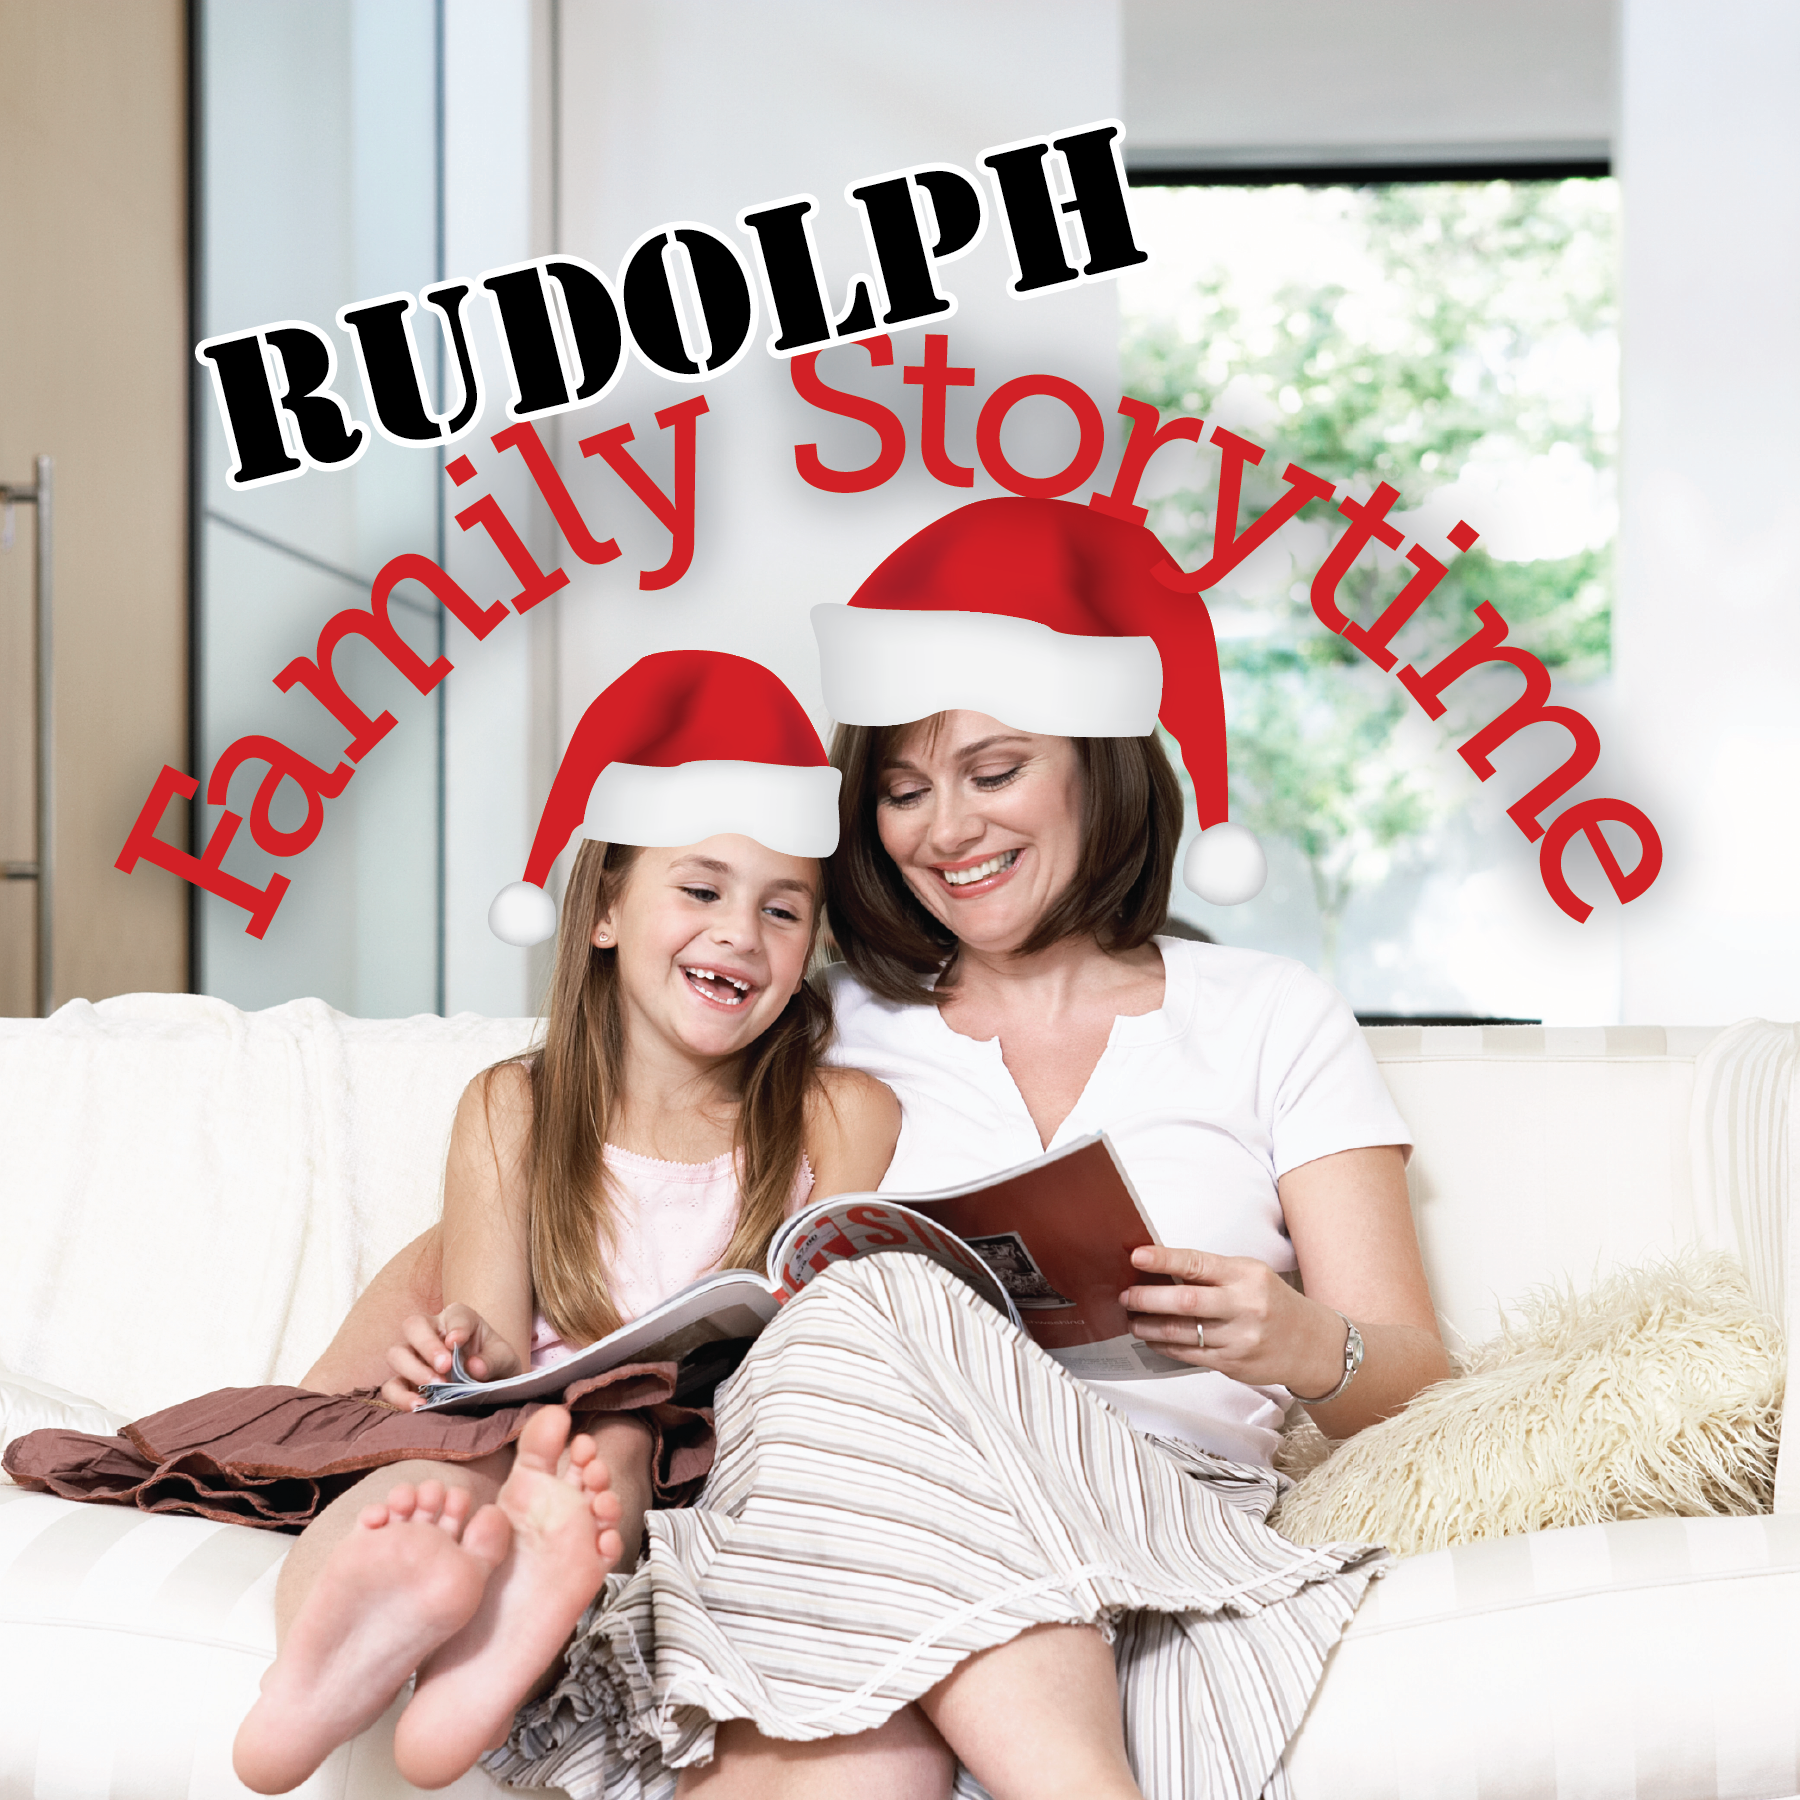 Rudolph the Red Nosed Reindeer Family Storytime